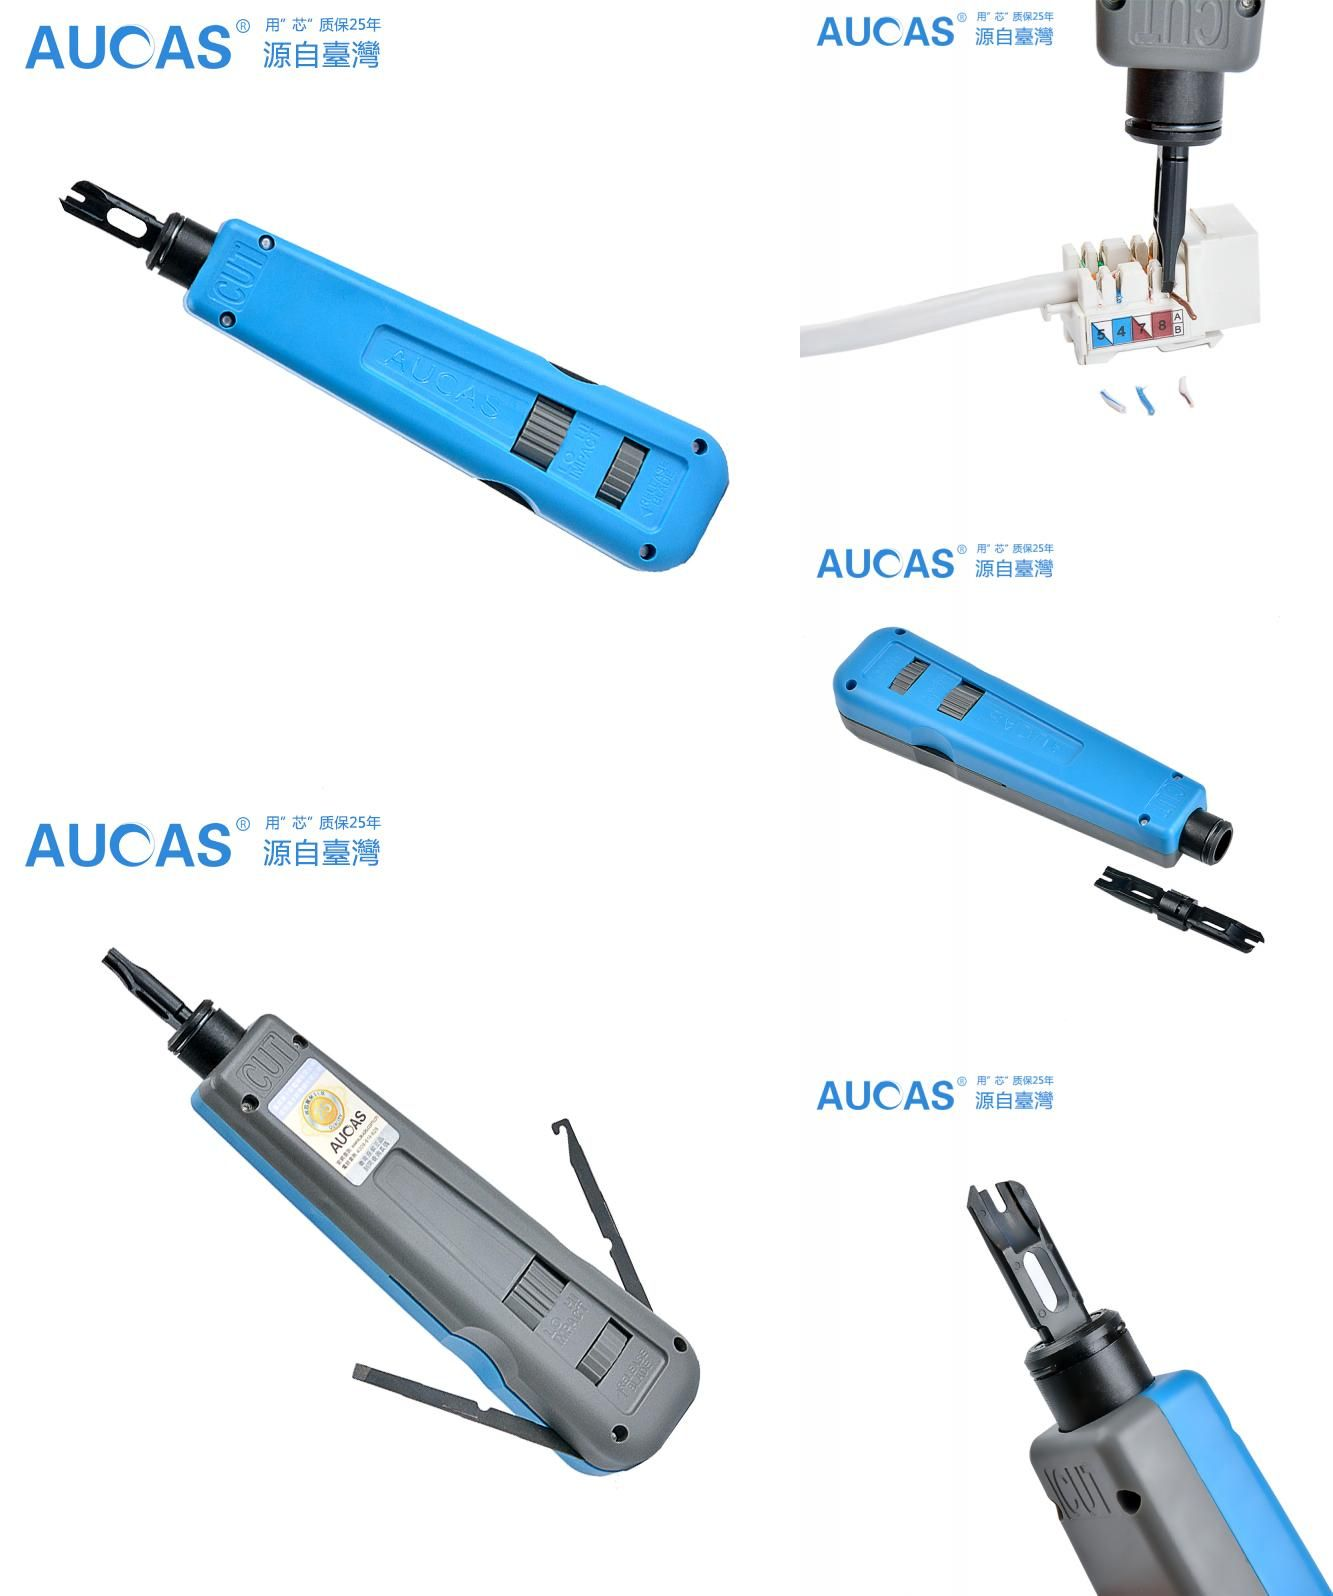 [Visit to Buy] Aucas Network Cable impact krone tool module block insertion punch down tool 110 type patch panel hookup tool #Advertisement